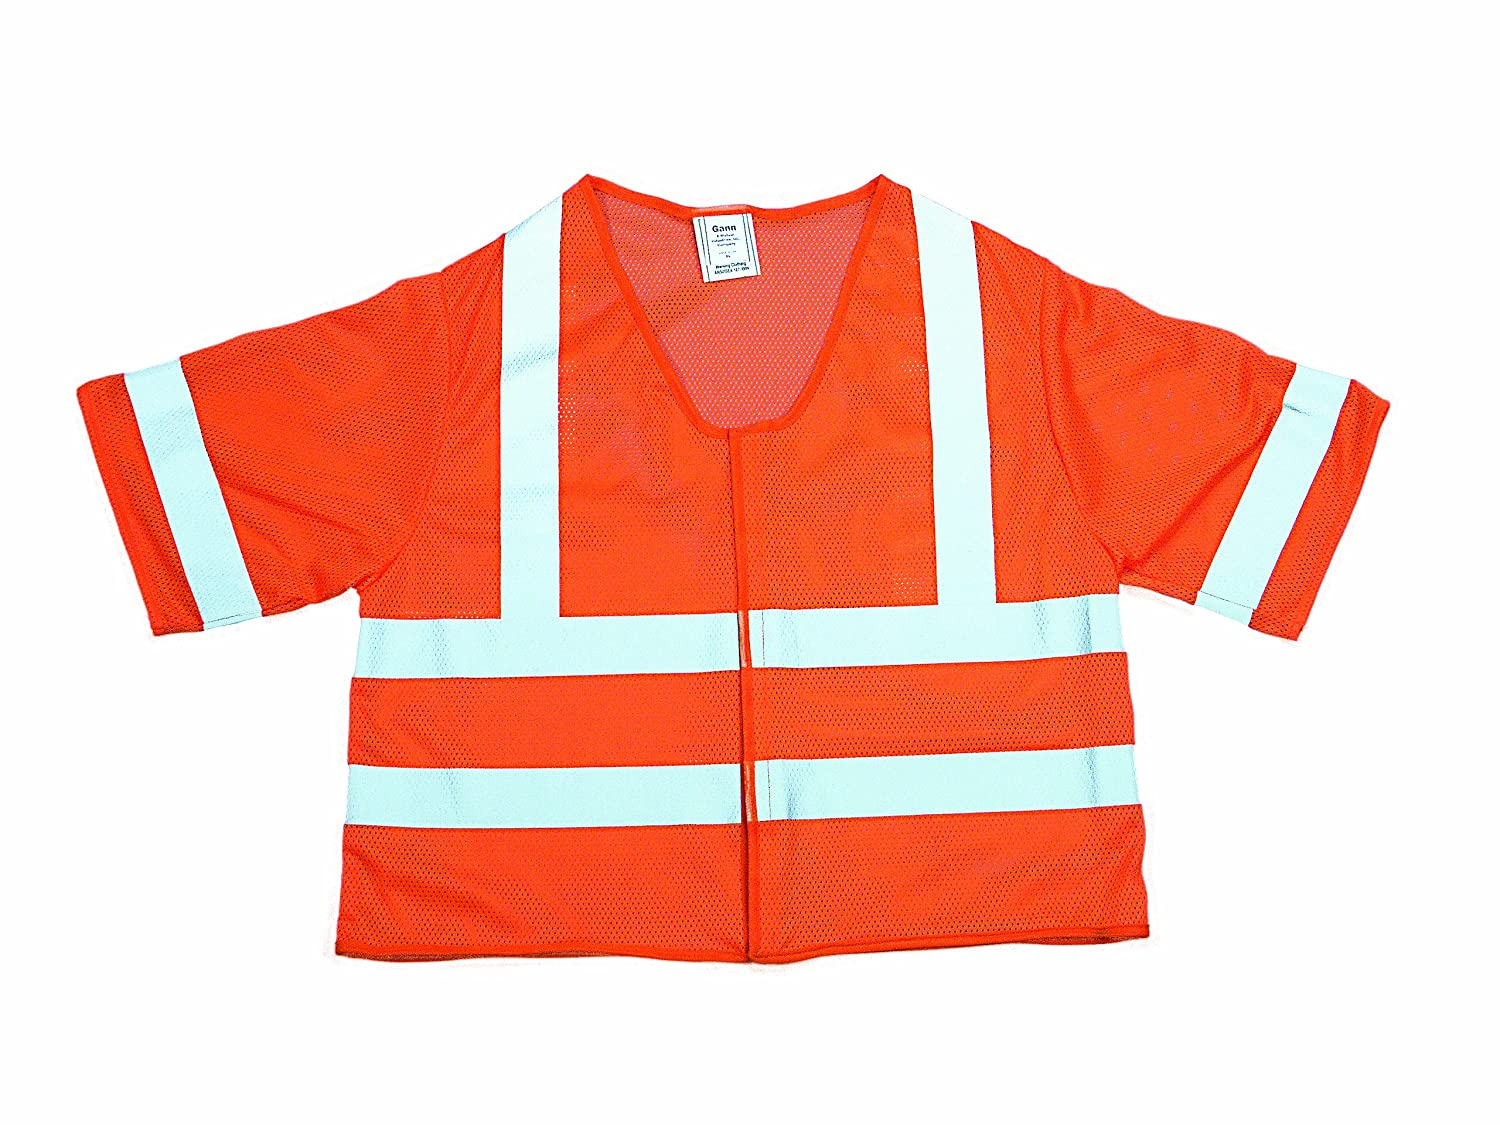 3X-Large Orange Mutual 16362 High Visibility Polyester ANSI Class 3 Mesh Safety Vest with 2 Silver Reflective Stripes